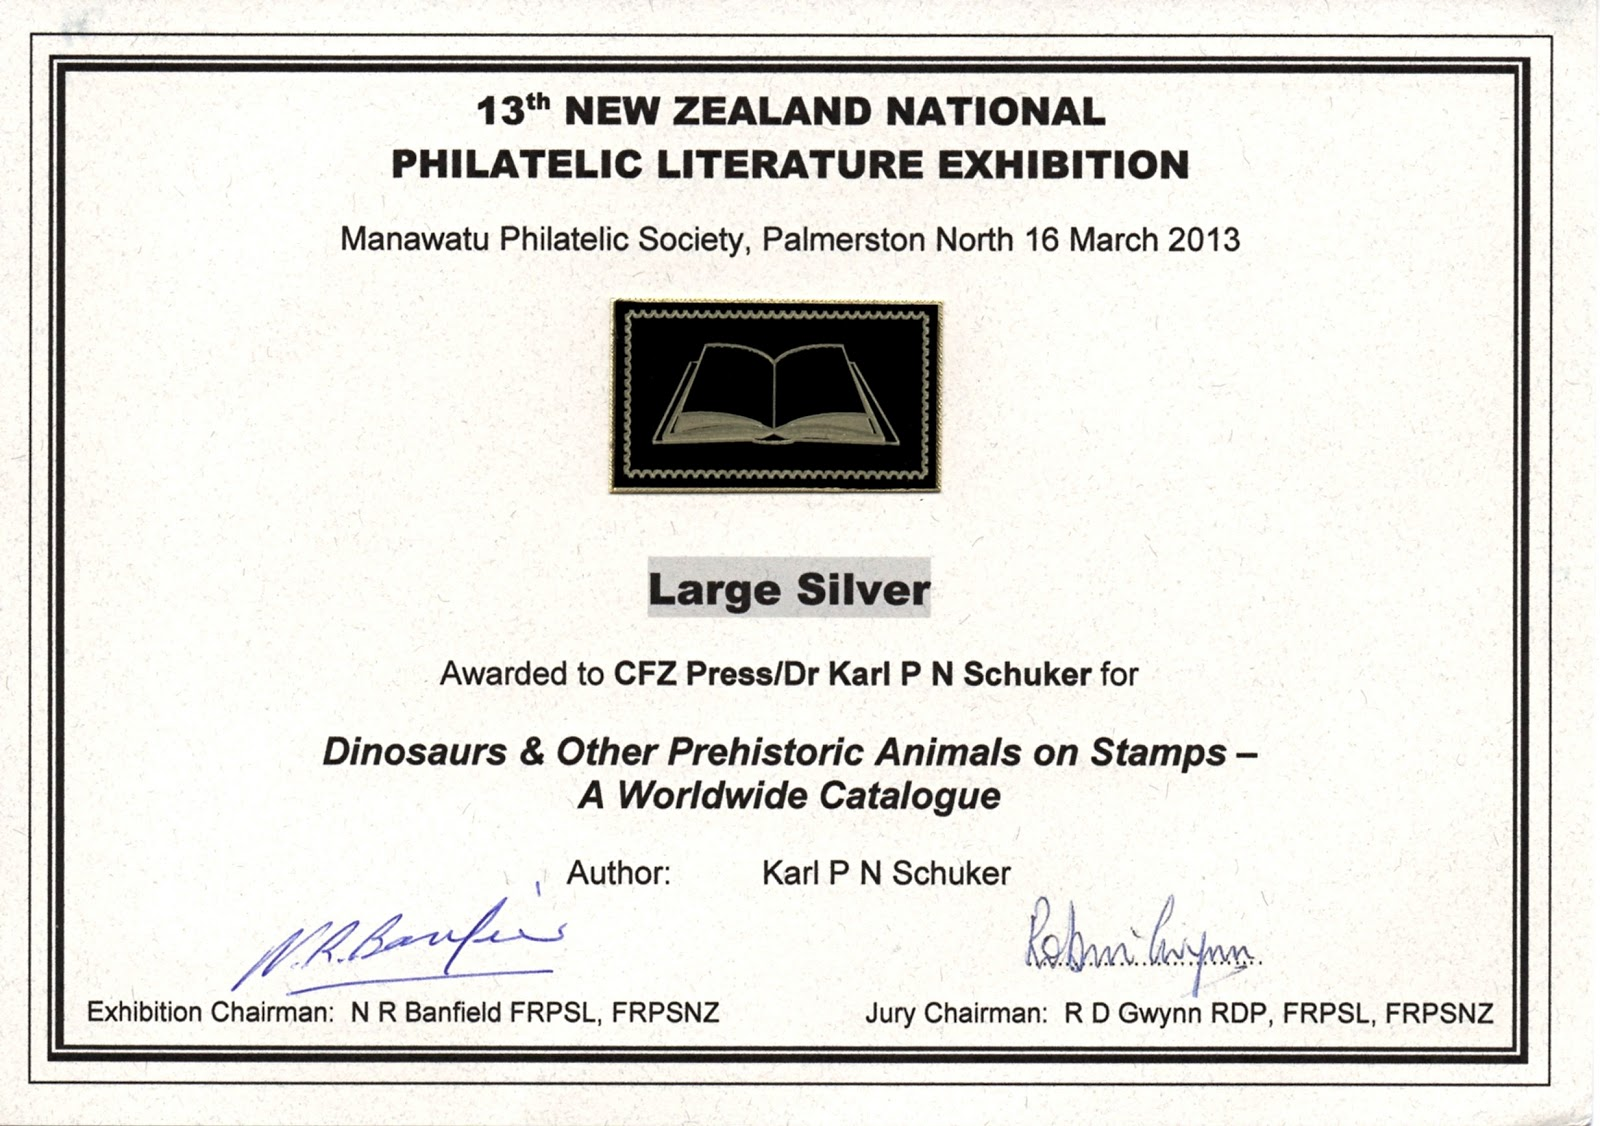 My book's awarded certificate